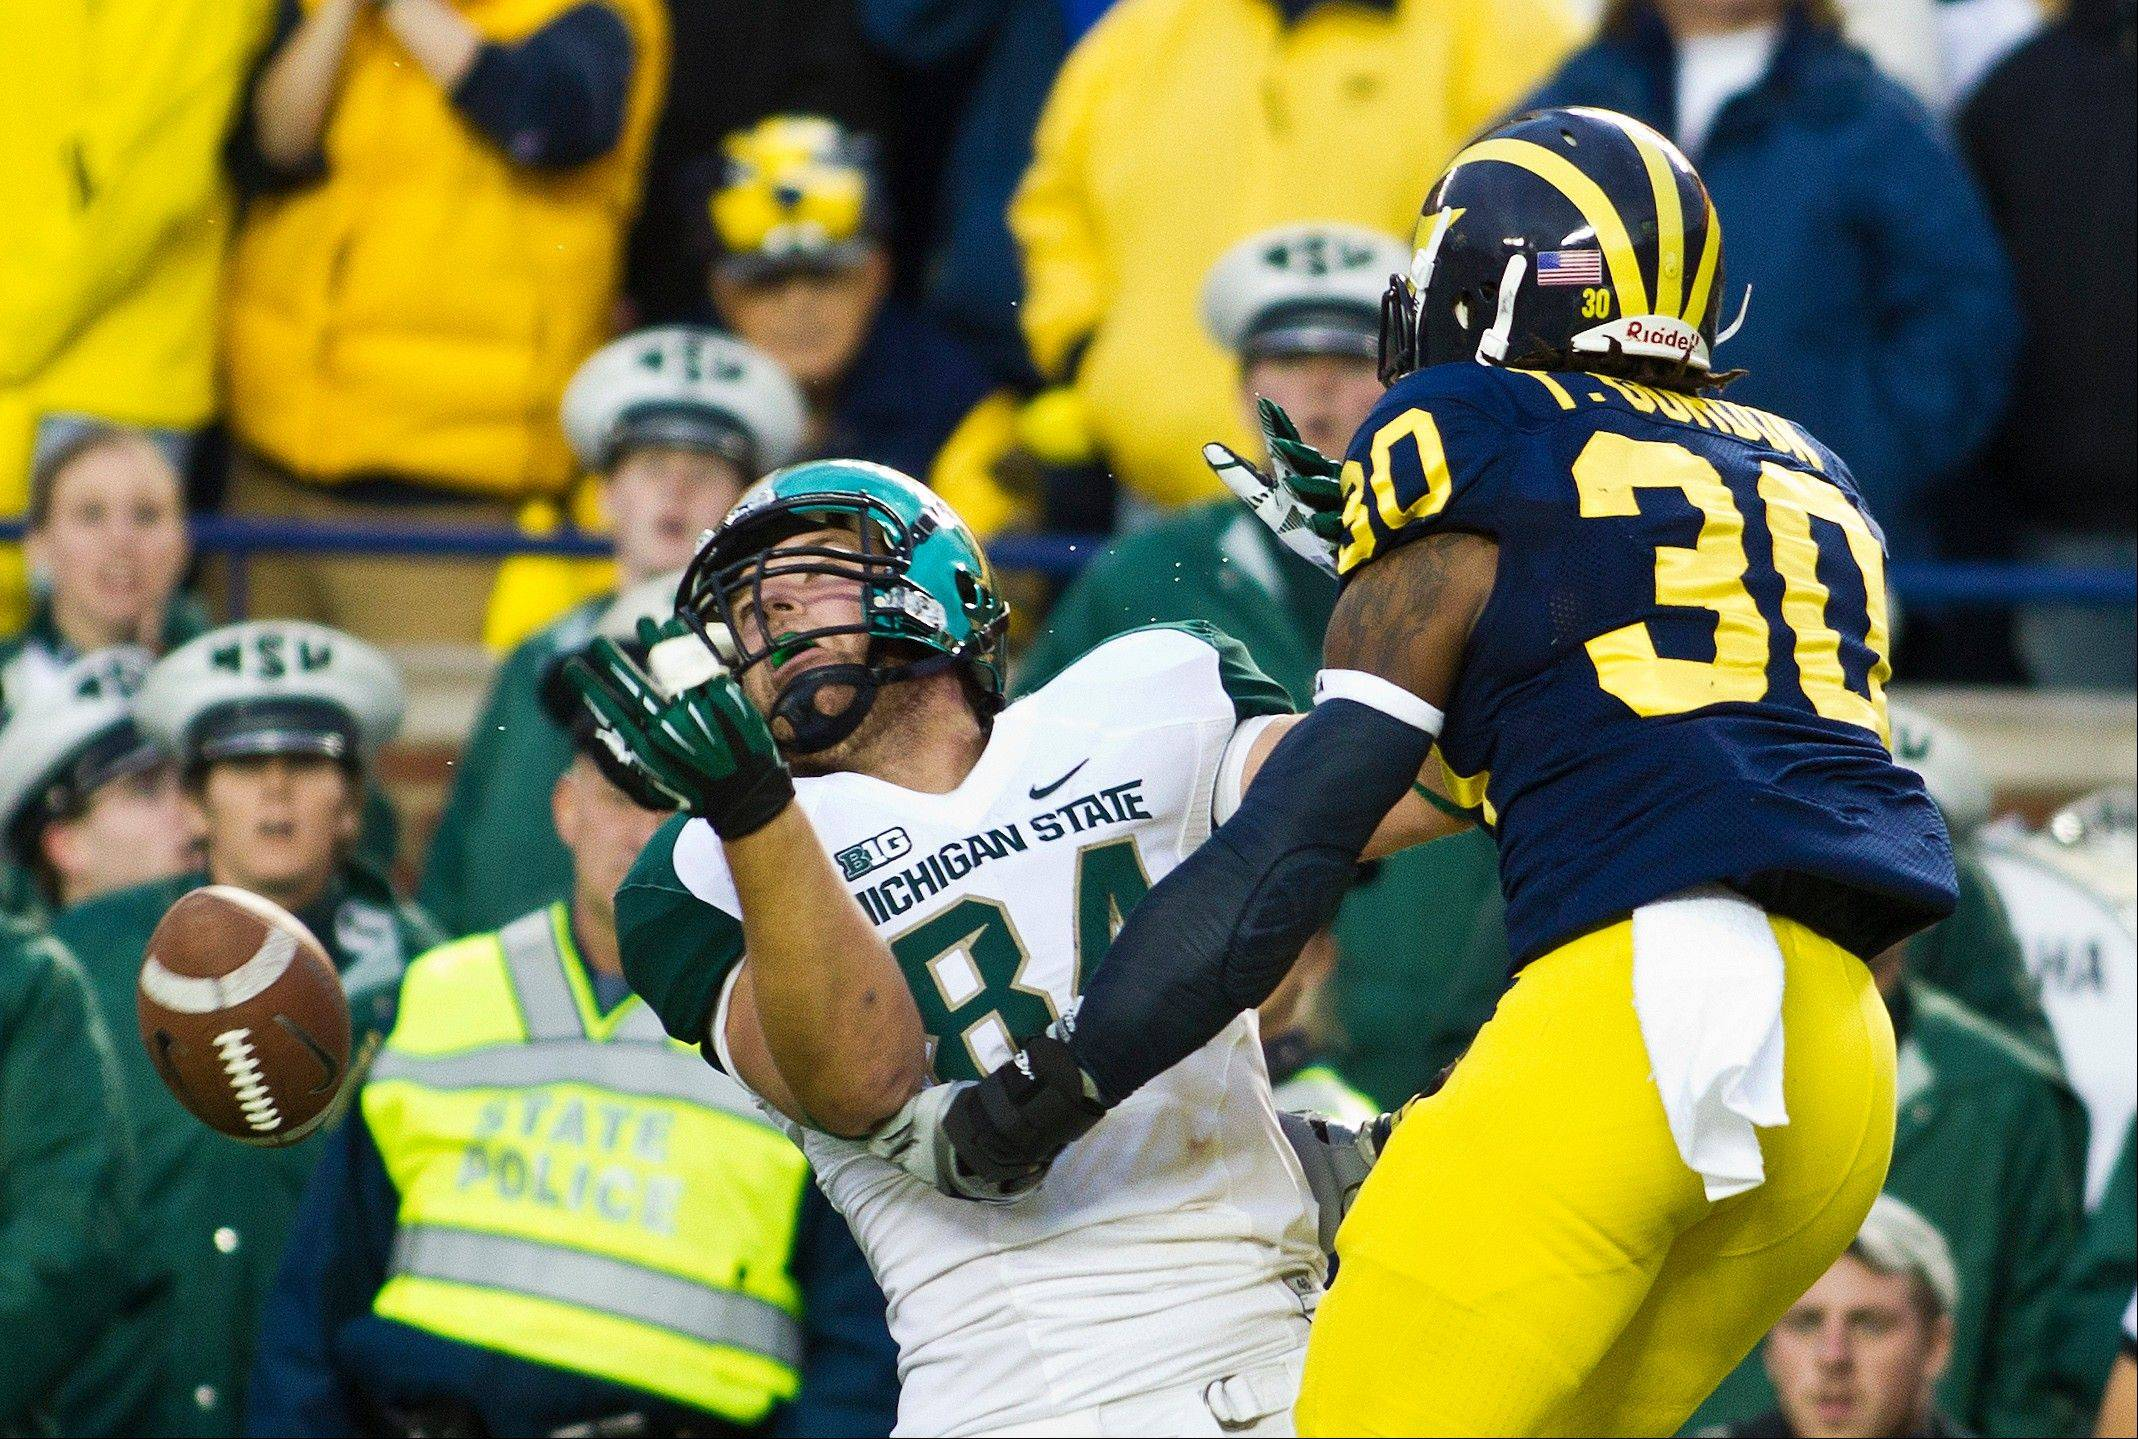 Michigan safety Thomas Gordon breaks up a pass intended for Michigan State tight end Derek Hoebing in the fourth quarter of Saturday�s game in Ann Arbor. Michigan won 12-10.